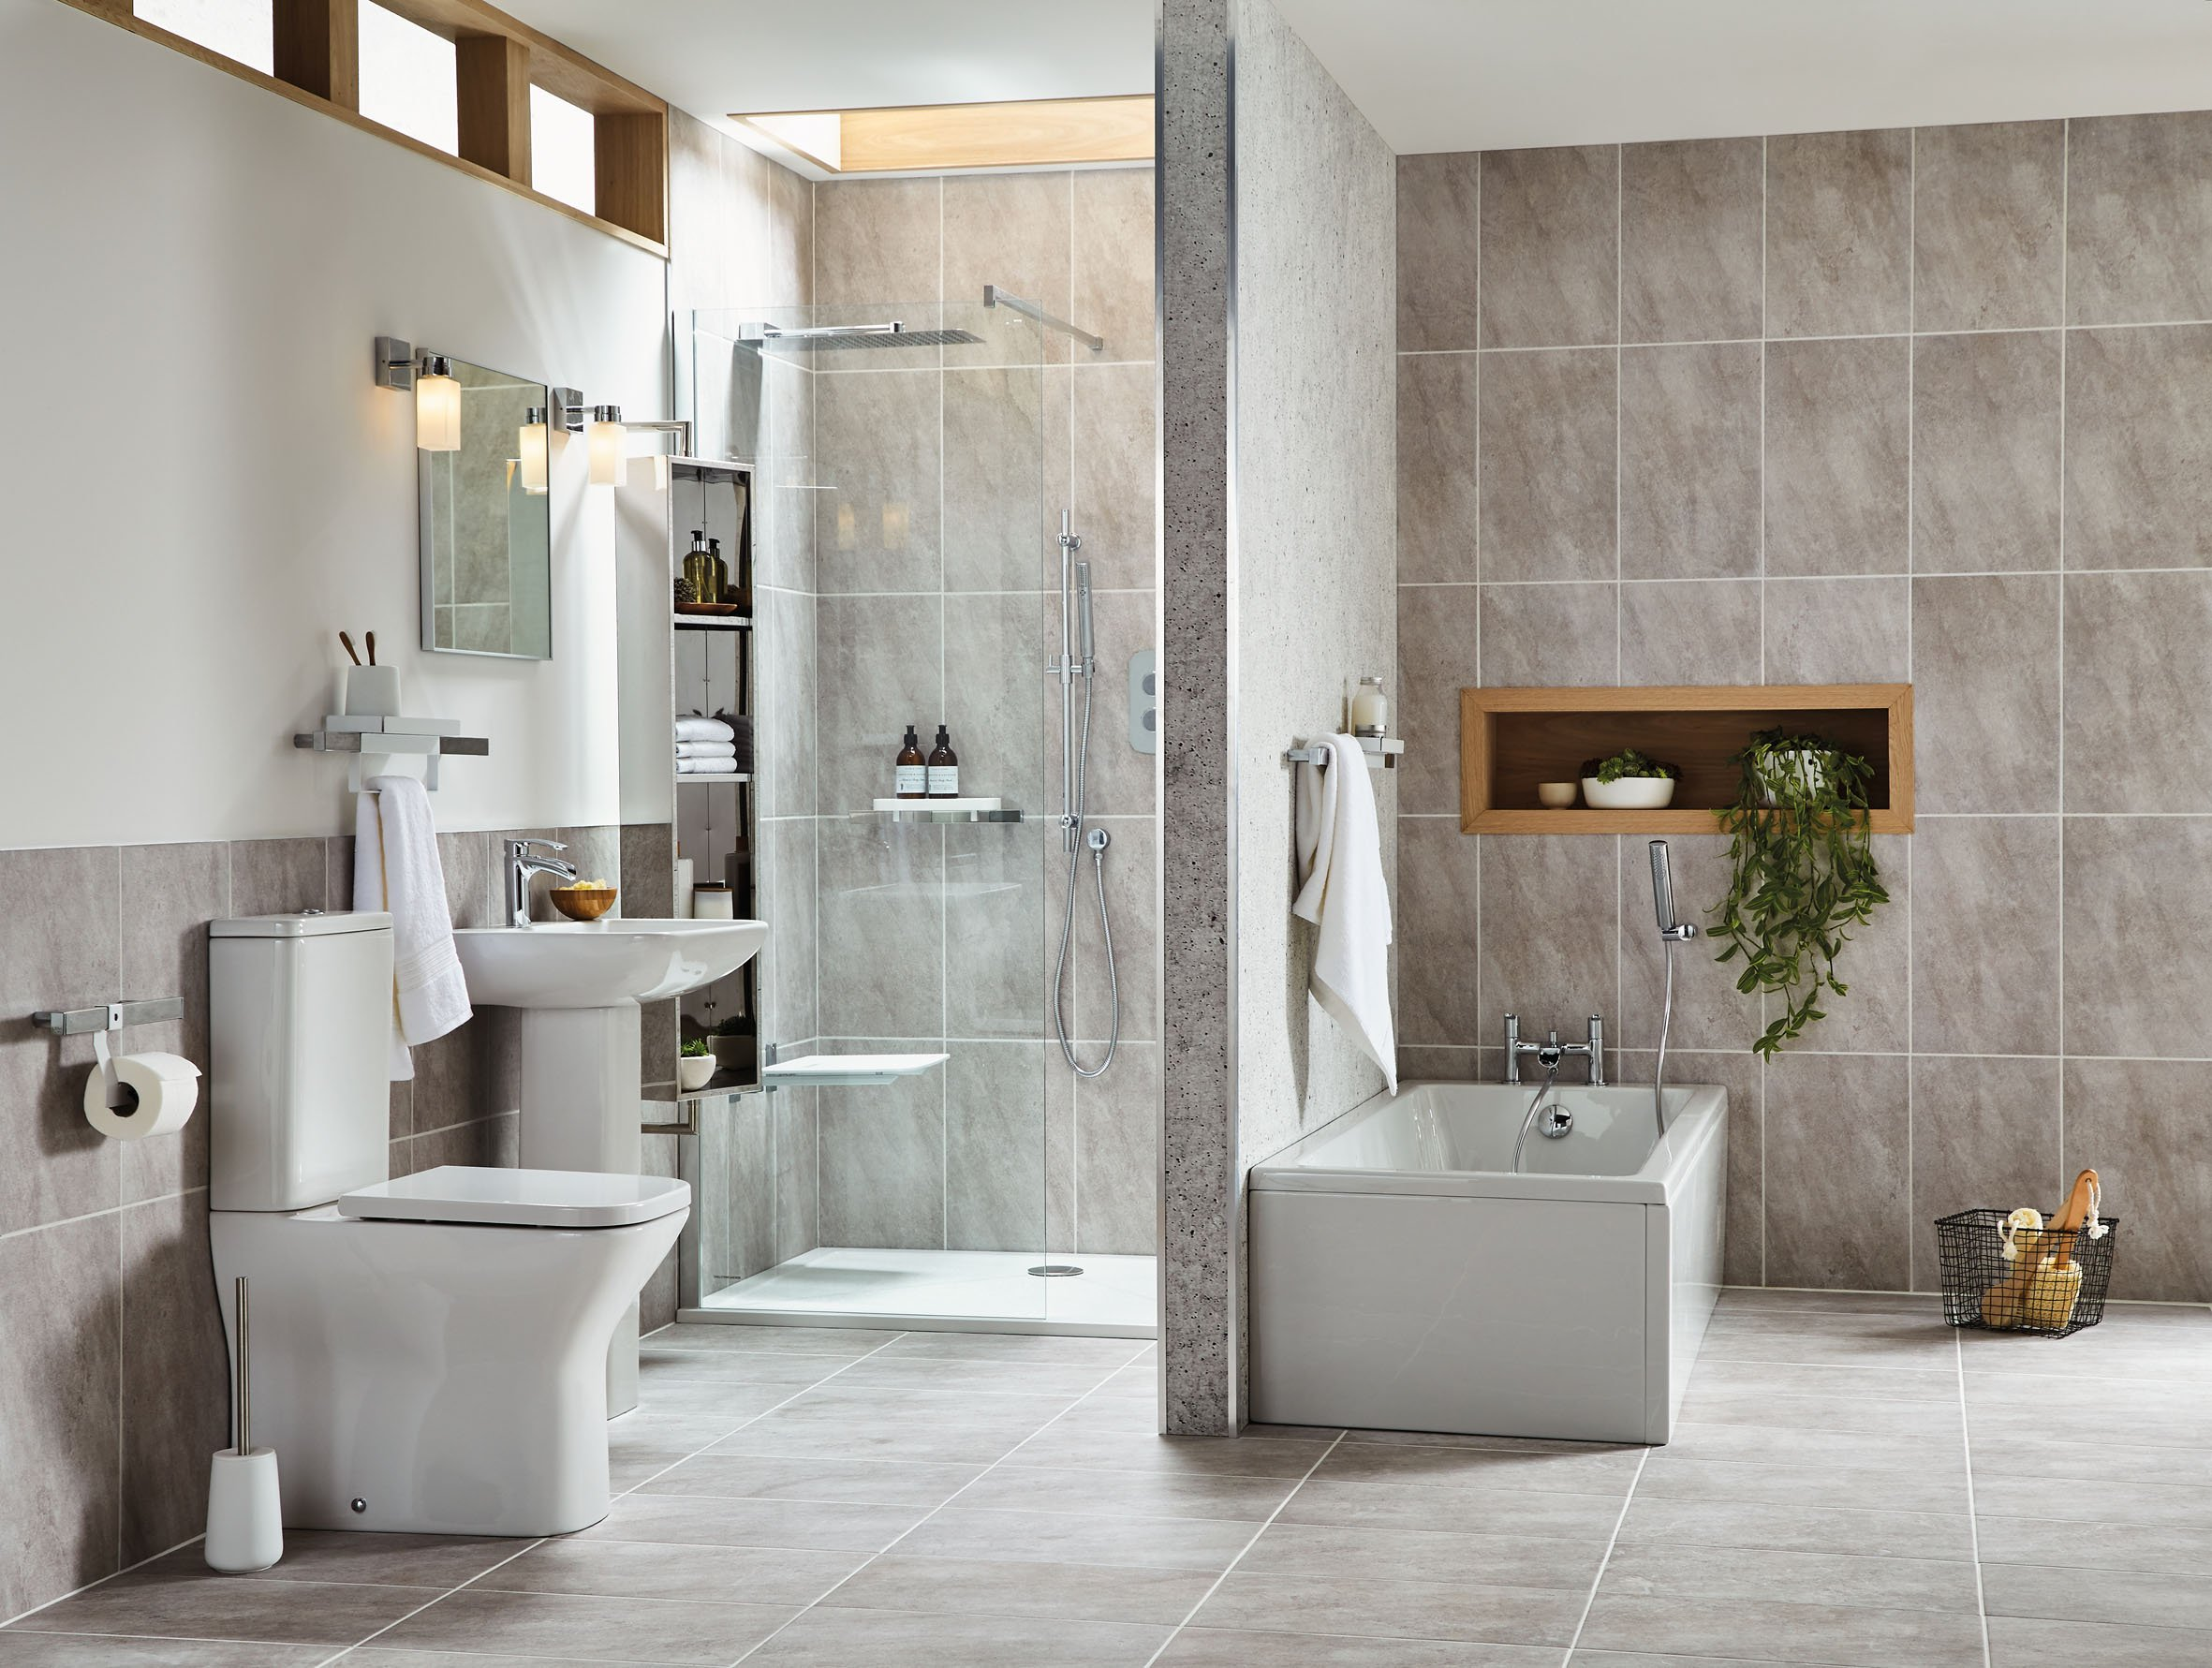 Our Walk-In Shower Ideas Guide